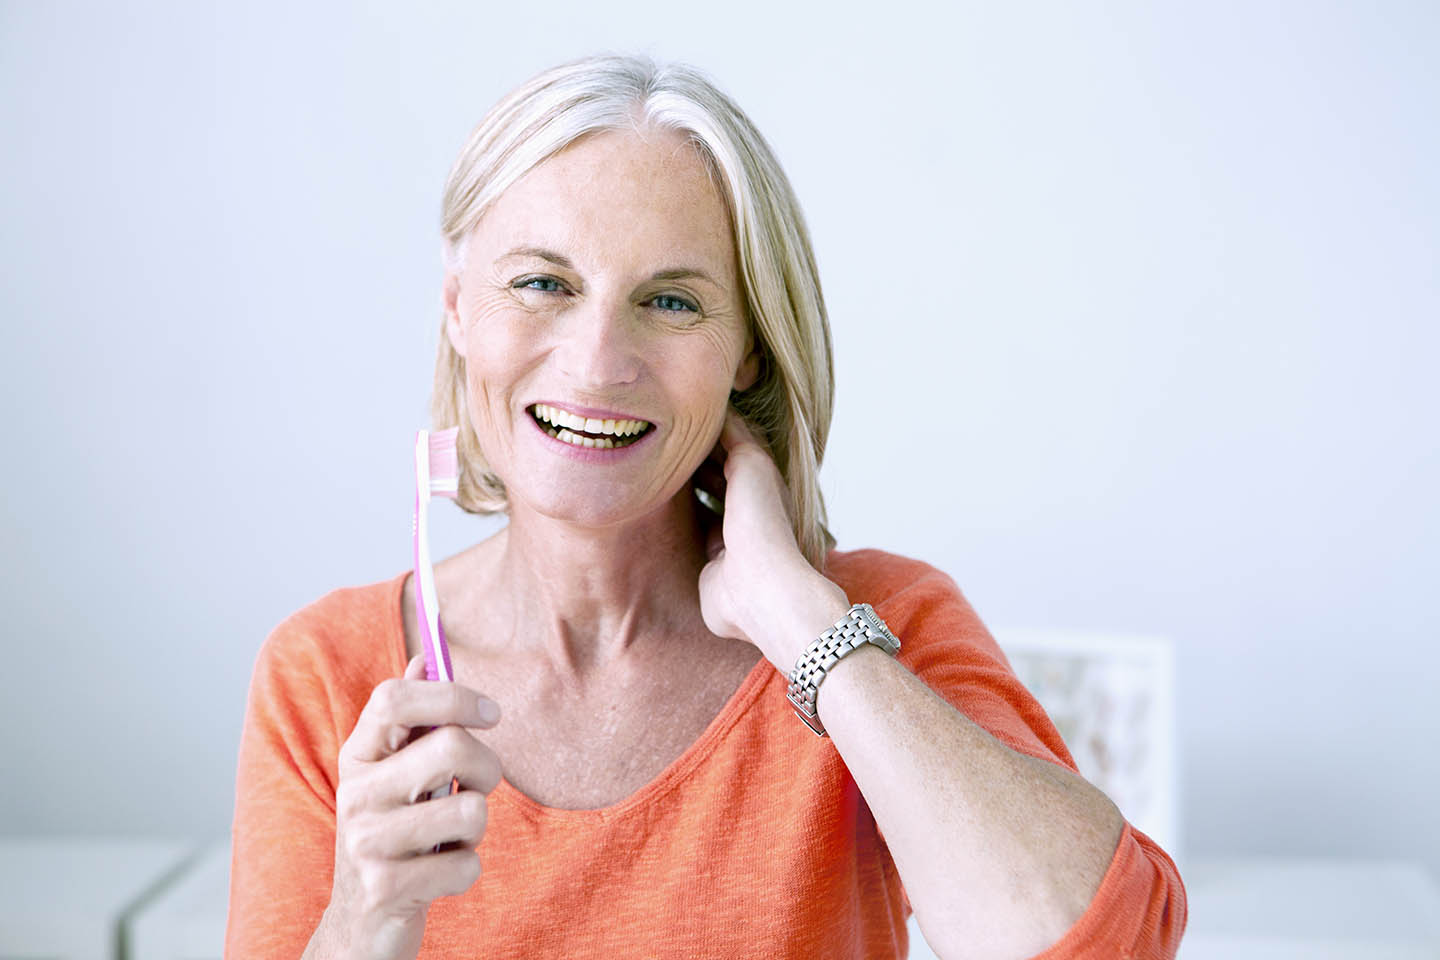 female patient holding a toothbrush